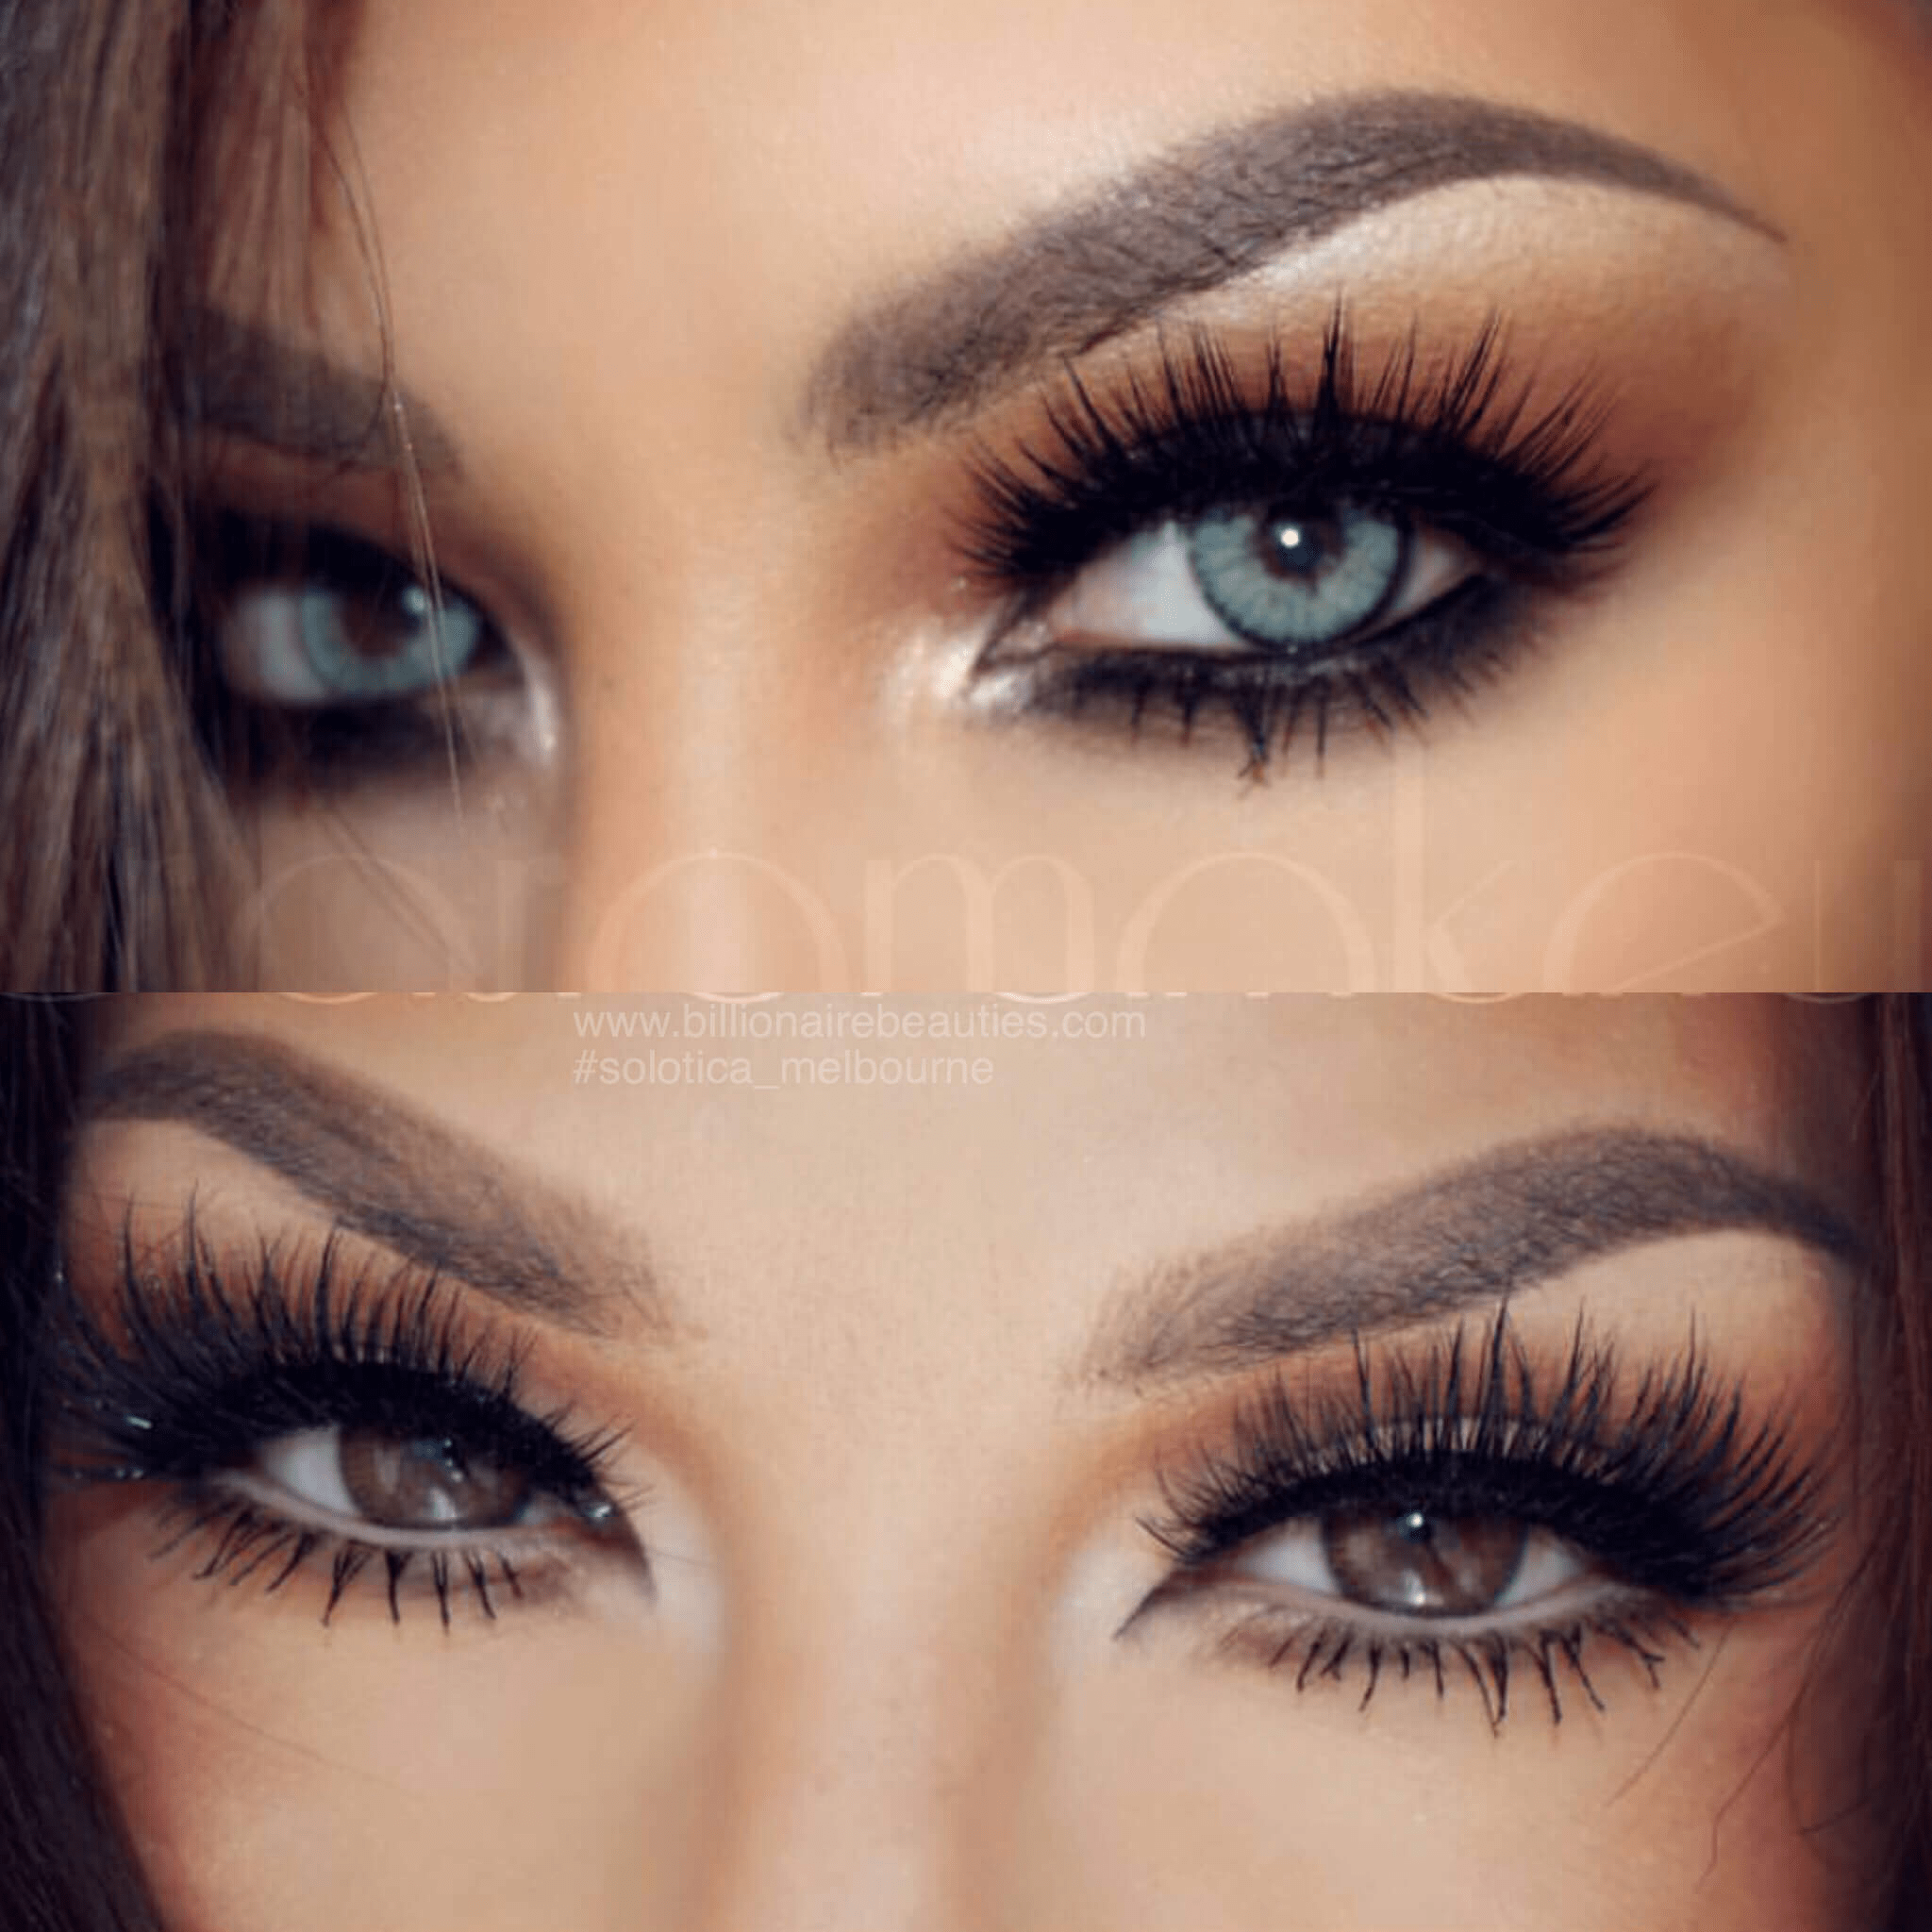 Stunning Auroramakeup Before And After Using Solotica Natural Quartzo Contact Lens Solotica M Colored Contacts Contact Lenses For Brown Eyes Eye Lens Colour